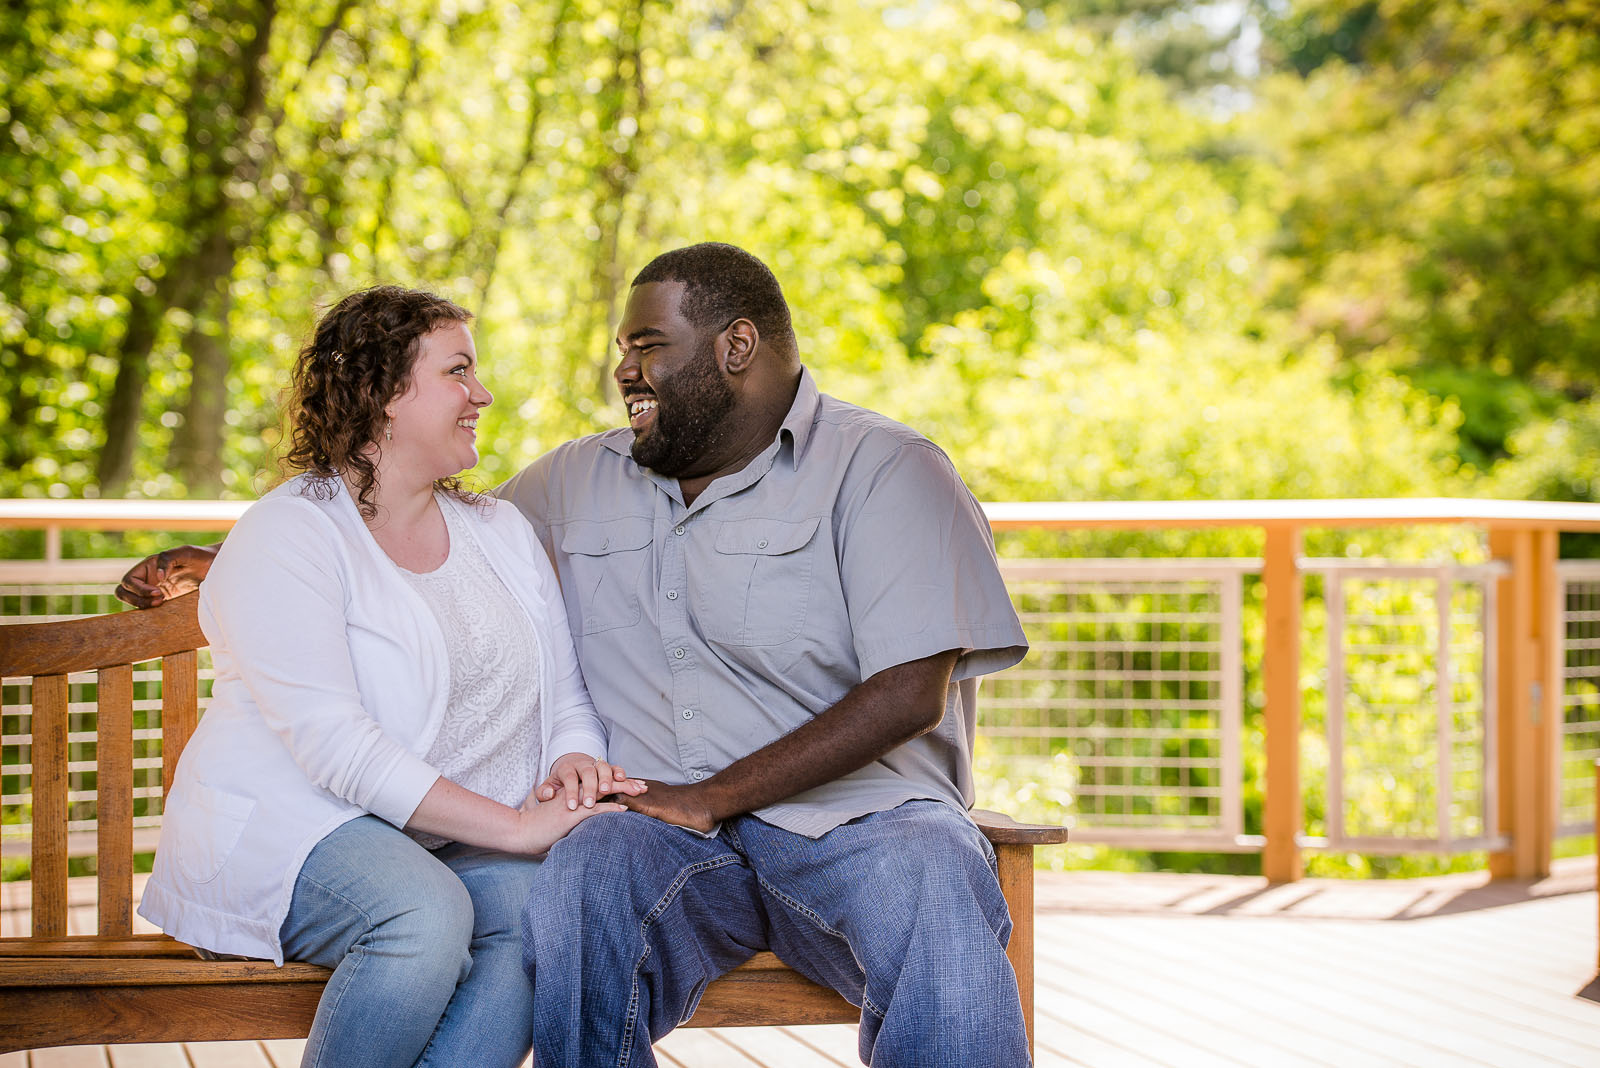 Eric_and_Christy_Photography_Blog_Laura_Jamal_Engagement-14